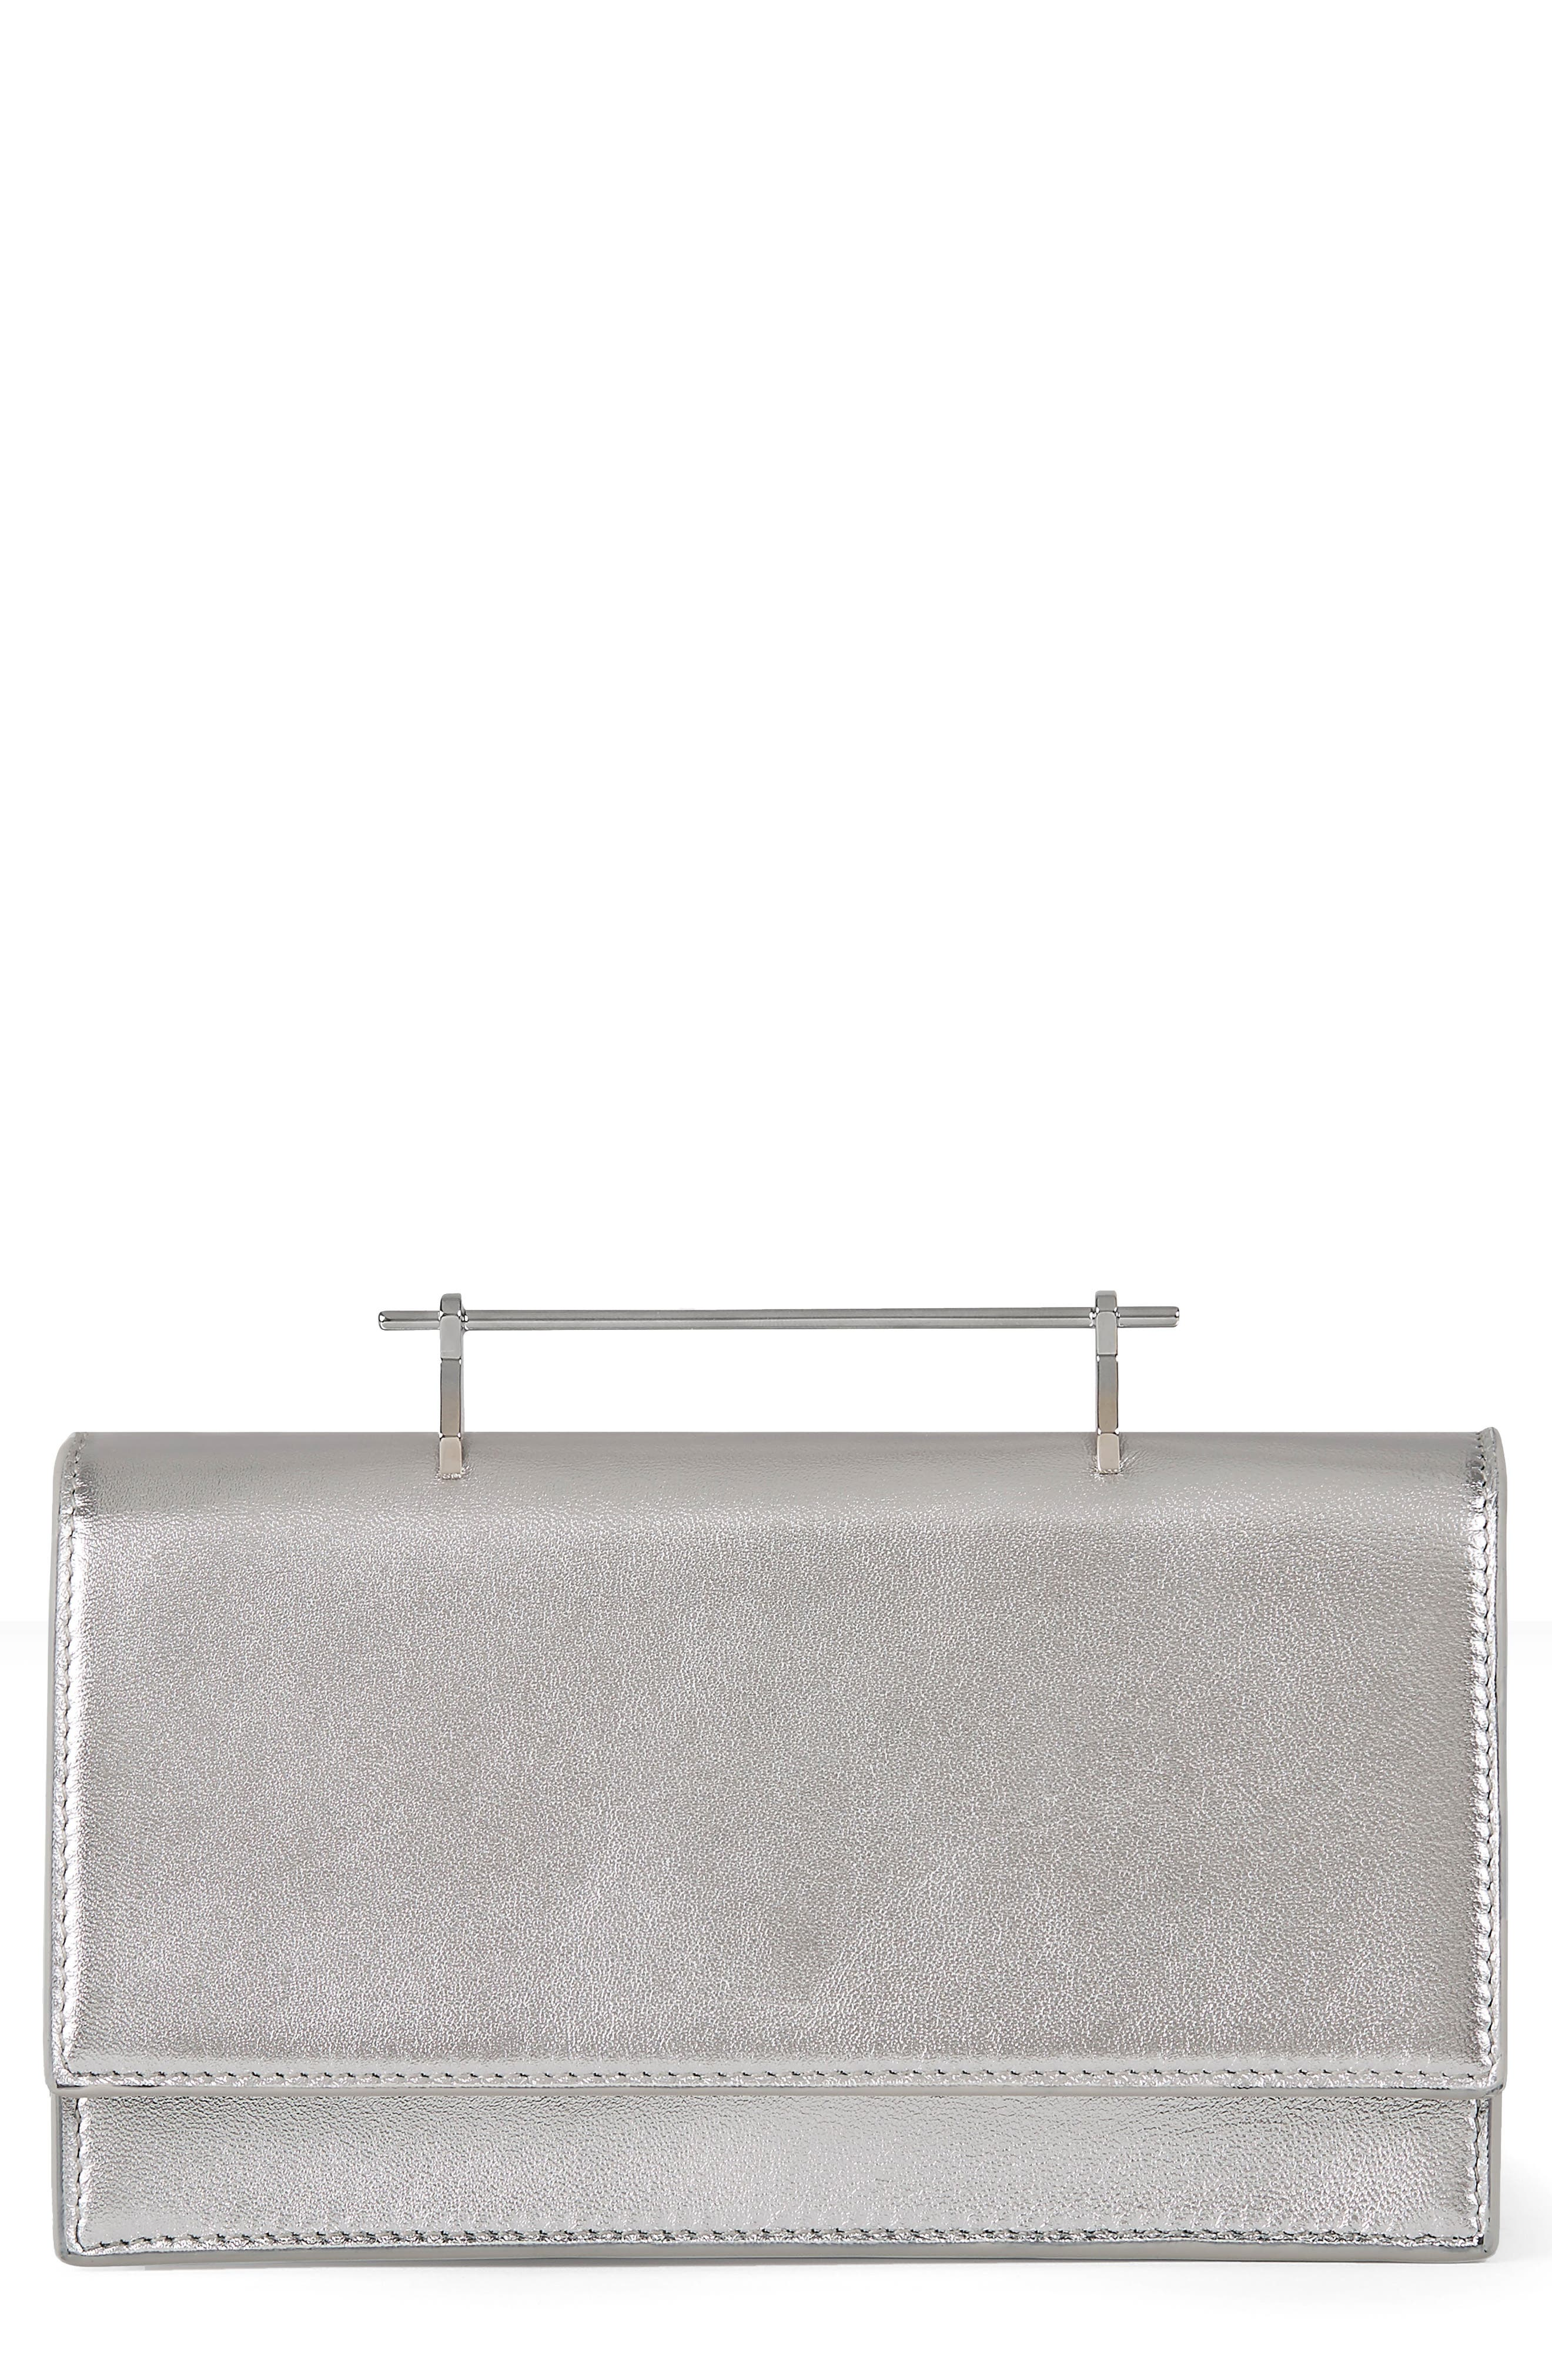 Alexia Metallic Leather Shoulder Bag,                         Main,                         color, 040